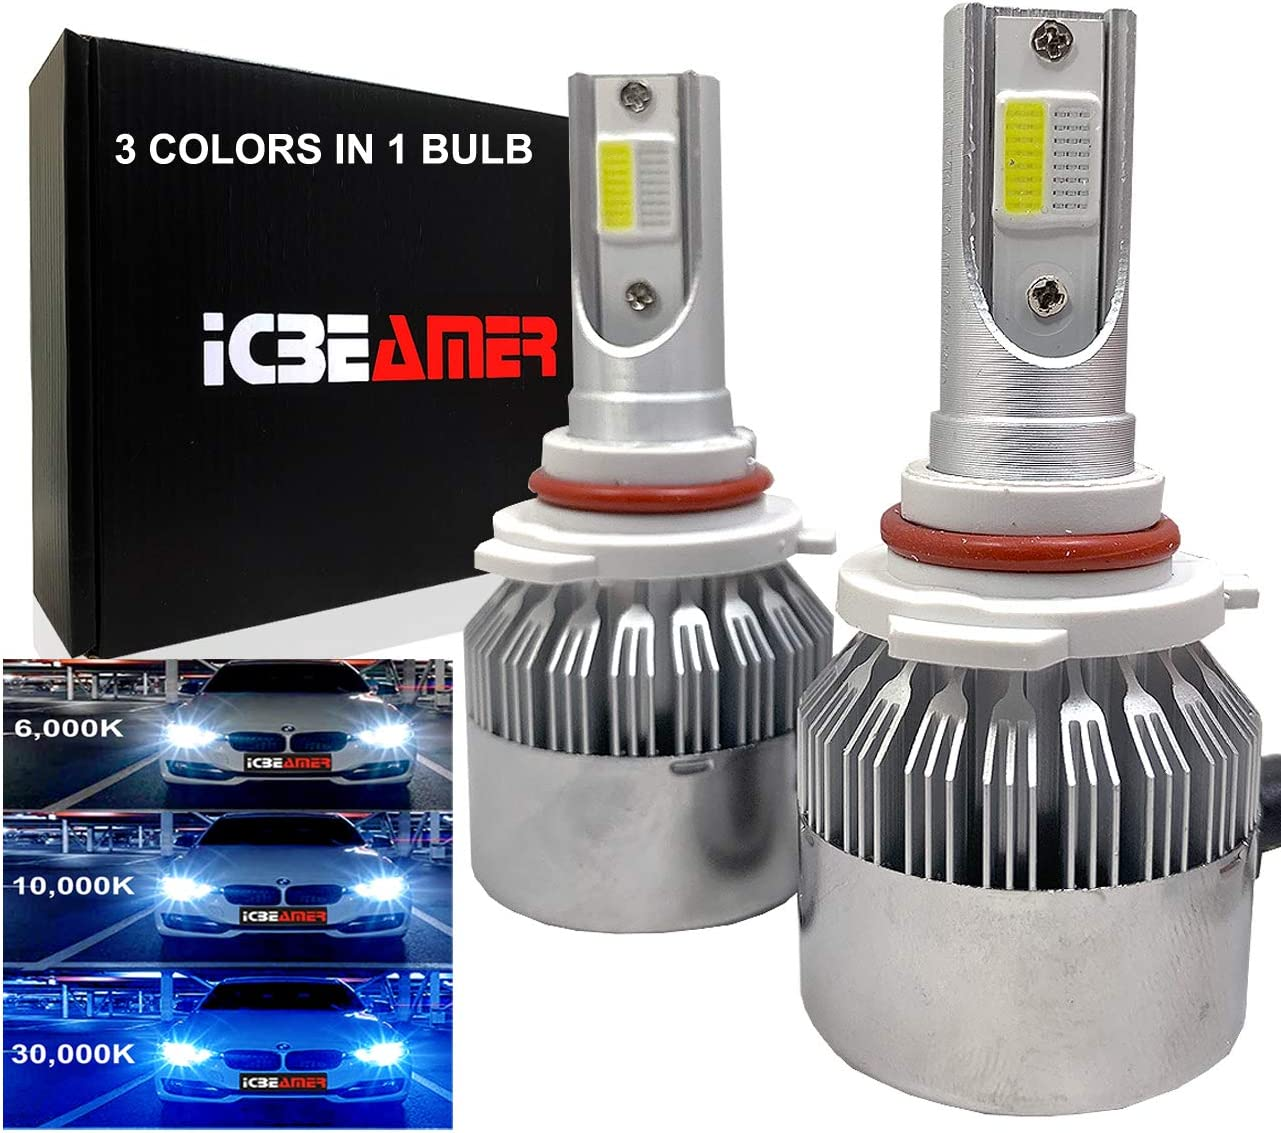 ICBEAMER 9006 Ultra-Cheap Deals HB4 Canbus COB Max 72% OFF LED Replace Colors 3 Bulbs Halogen